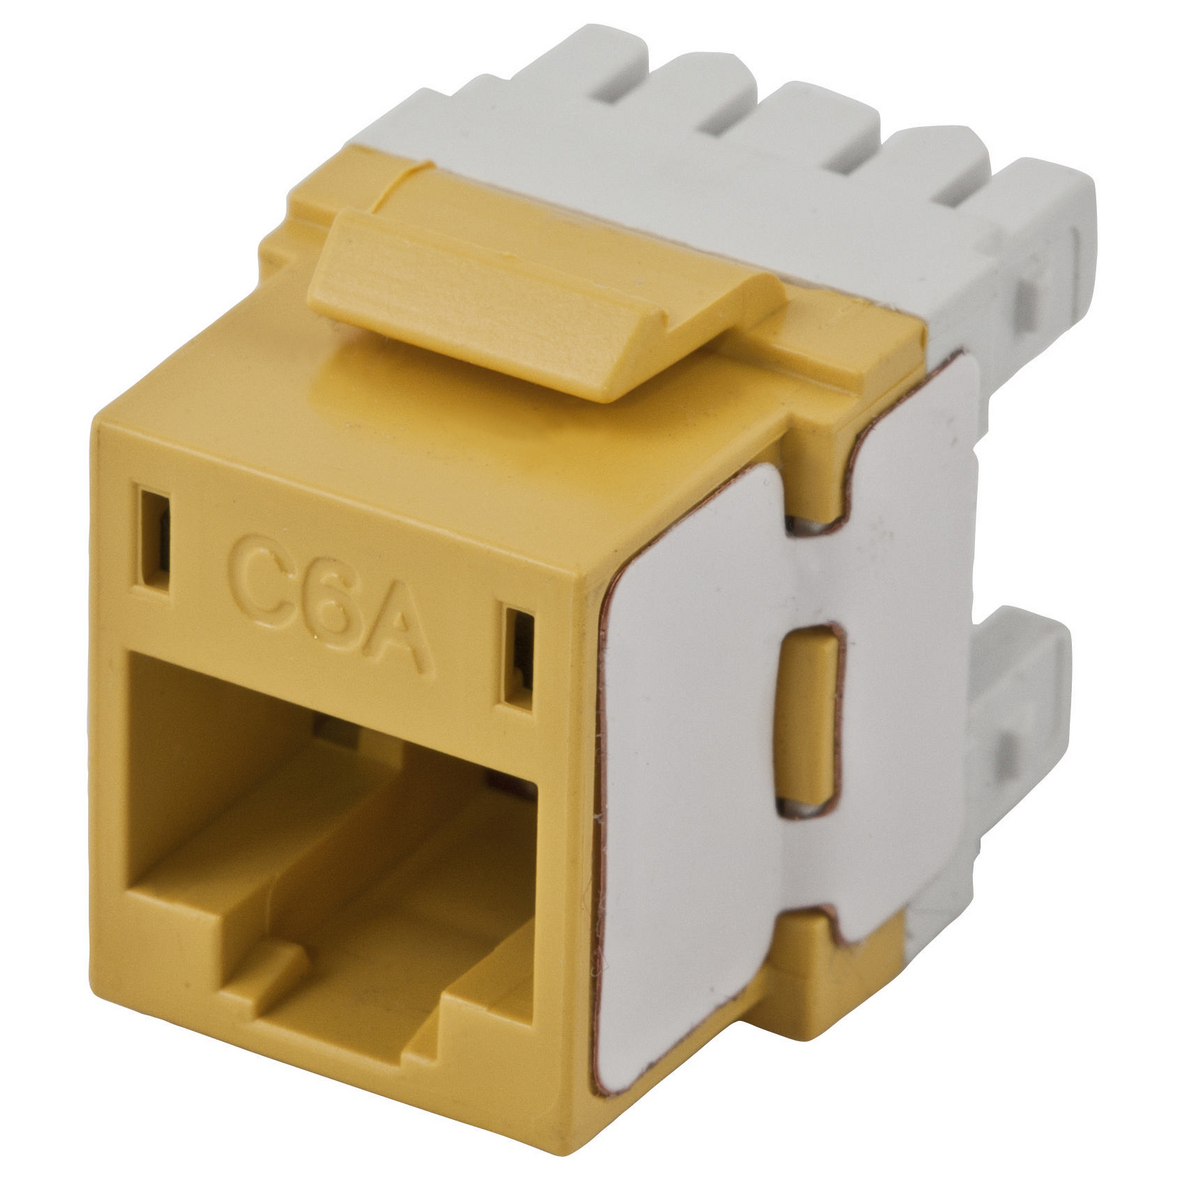 CAT6A Universal Yellow Hubbell HJ6AY25 Jack